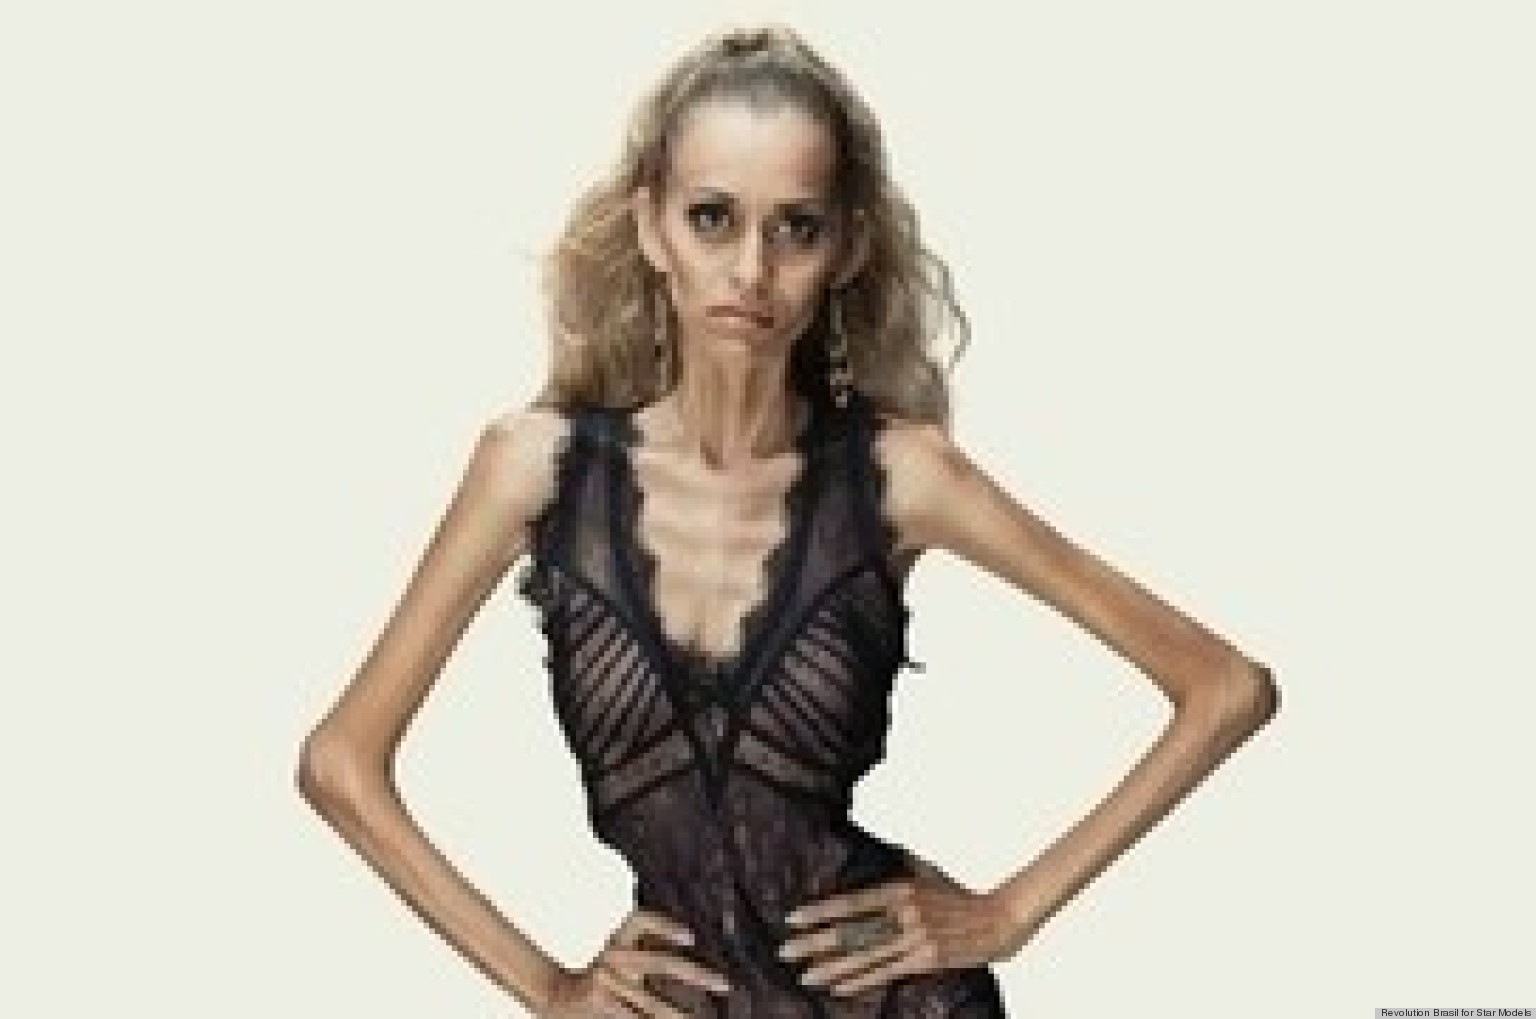 Möbel Ad Anti Anorexia Ads Stun With Tagline You Are Not A Sketch Photos